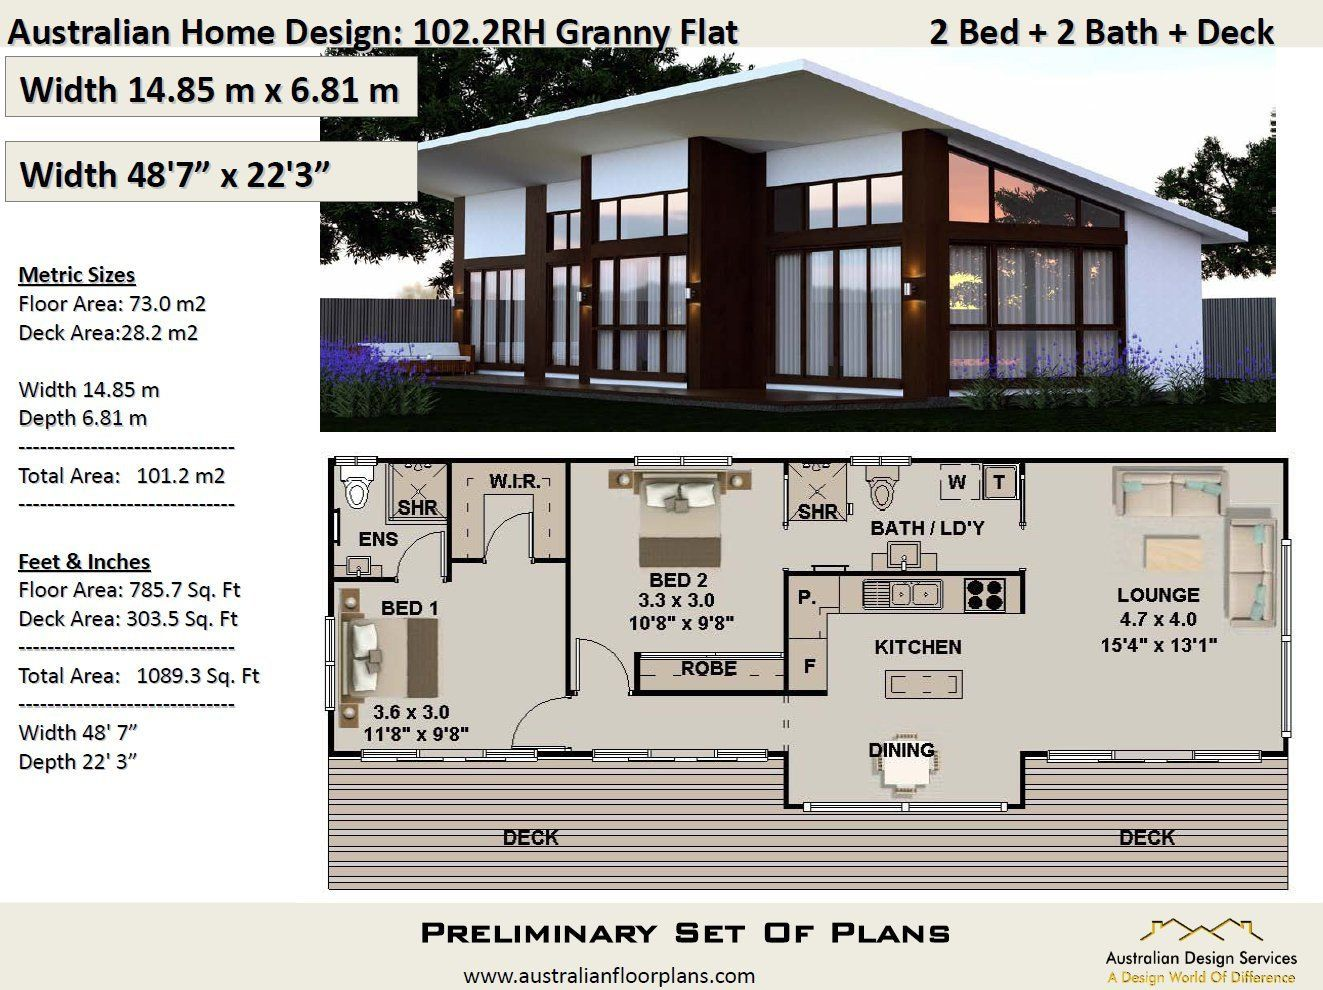 2 Bedroom Cottage Home Design Small House Plans Australia Granny Flats Bunnings 2 Bedr Small Cottage House Plans House Plans For Sale House Plans Australia